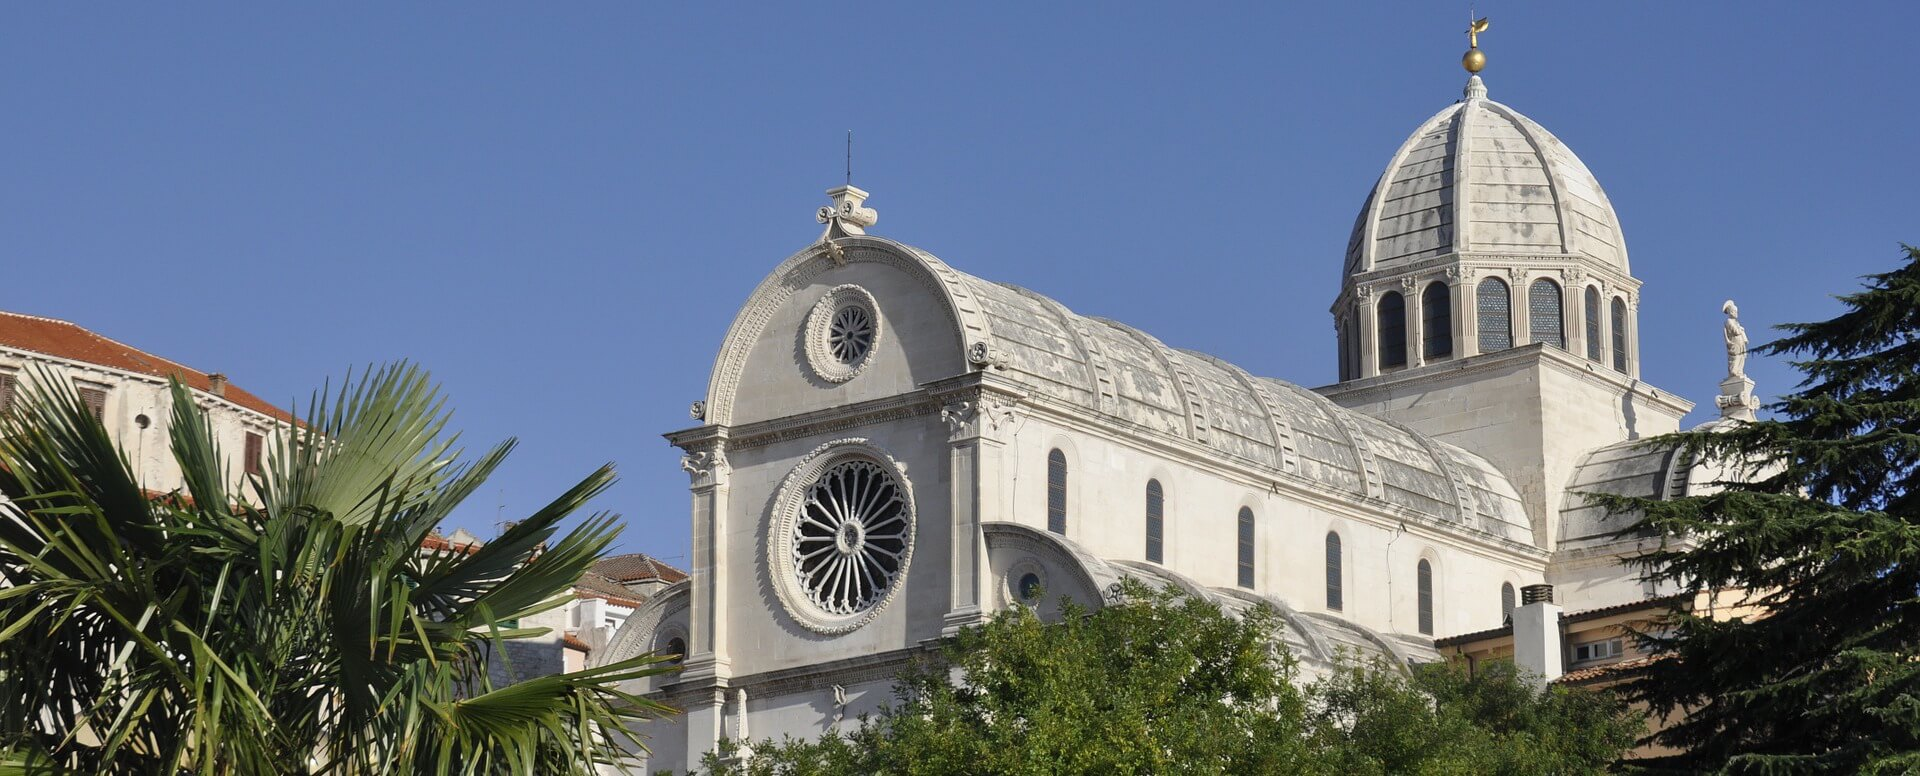 10. Contemplating the Cathedral of Saint James in Sibenik - Croatia